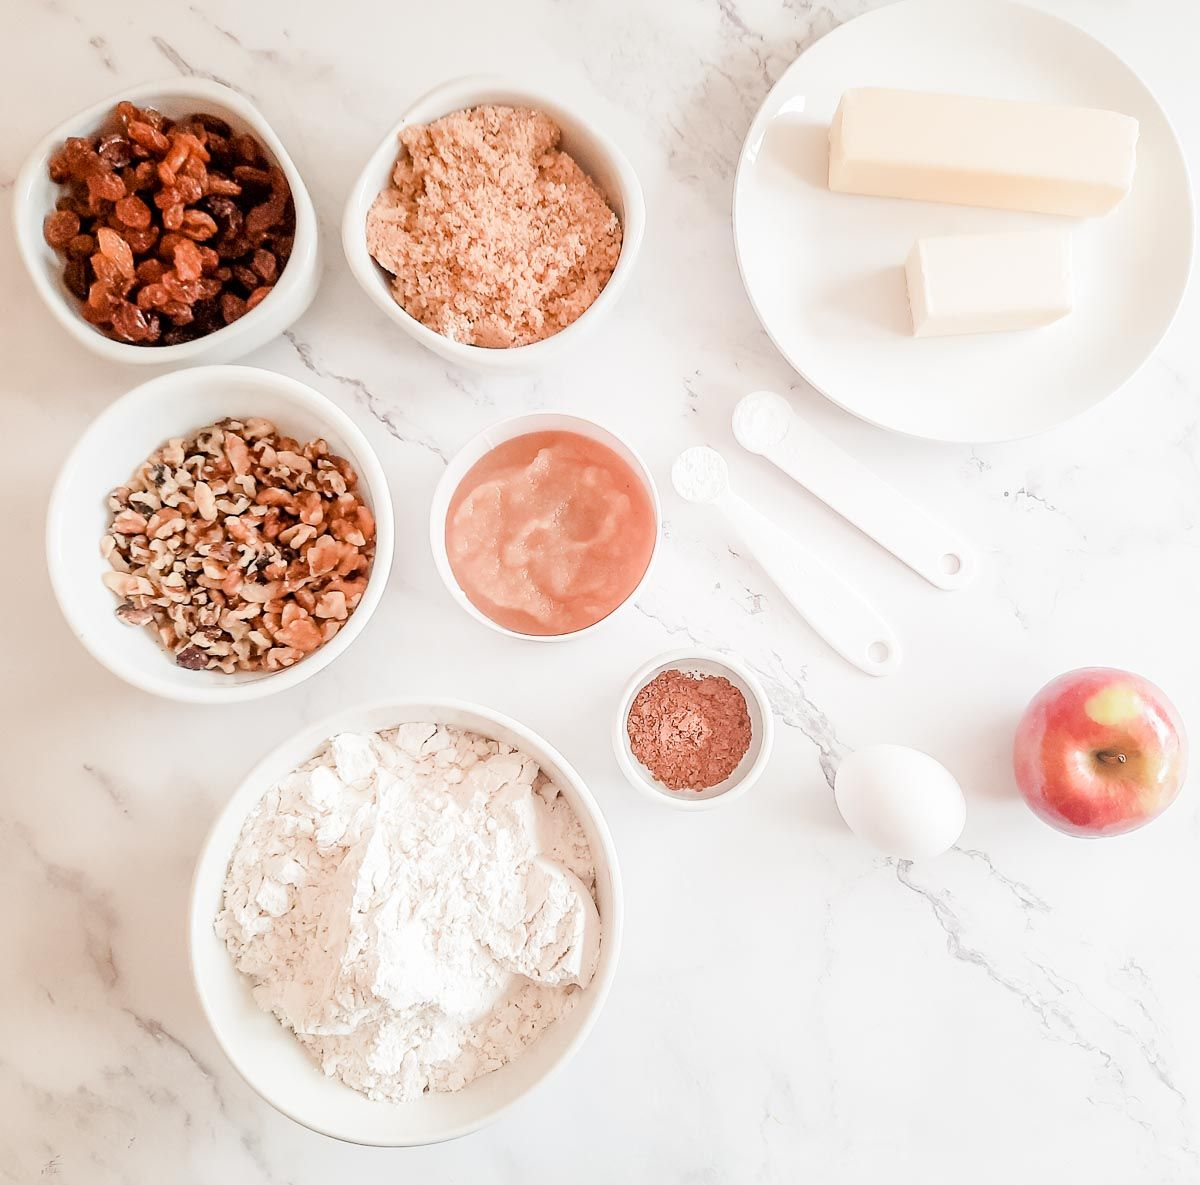 Cookie dough ingredients laid out in white bowls on a marble surface.